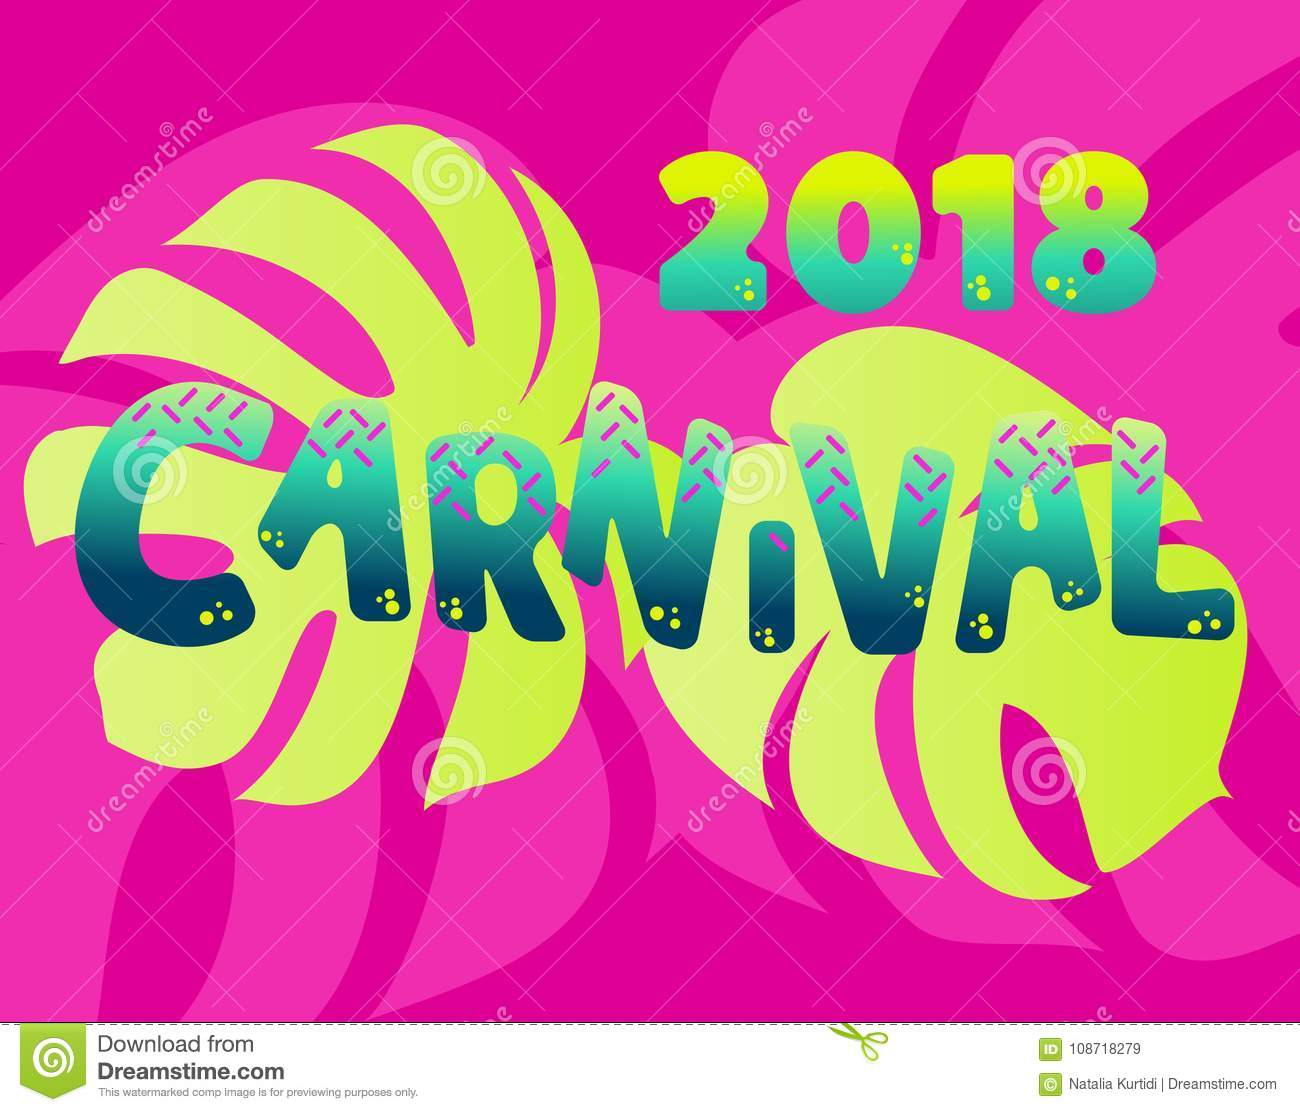 Summer Festival 2400*1085 transprent Png Free Download - Diagram, Triangle,  Area. - CleanPNG / KissPNG